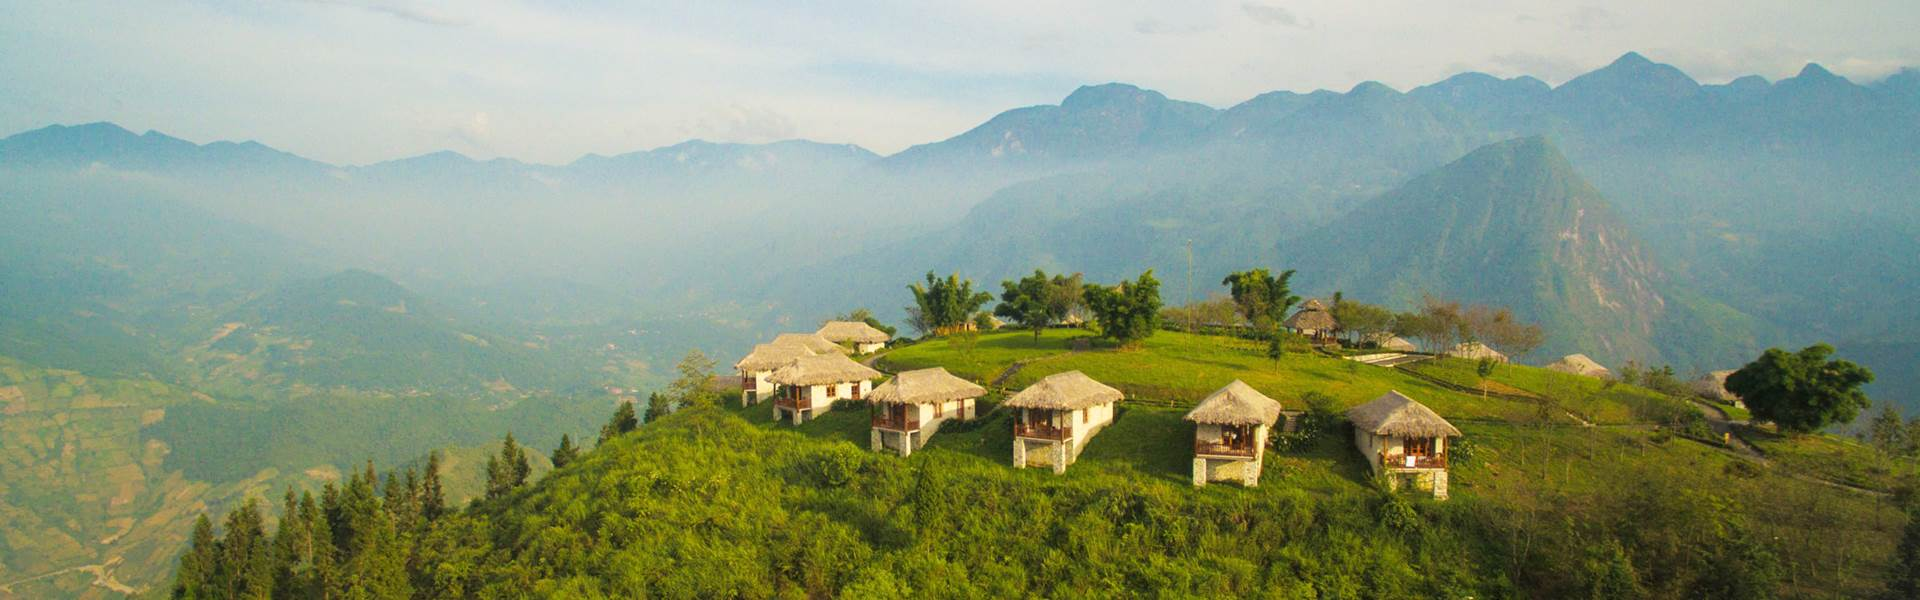 Topas Ecolodge- Sapa accommodation -Asiatica Travel